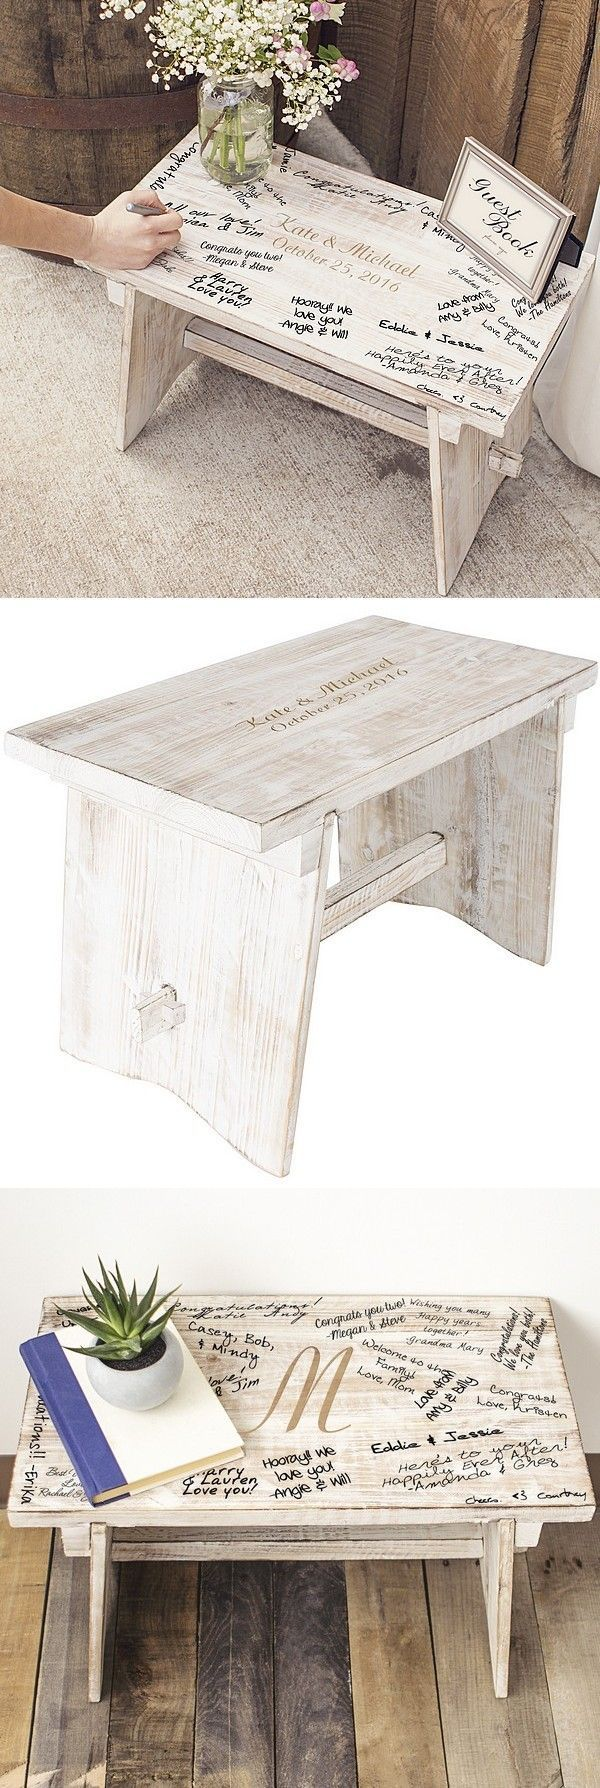 A unique alternative to the traditional guest book, a decorative signature bench personalized with the bride and groom's name and wedding date will add dimension and a visual focal point to your wedding reception receiving table. Create a sign encouraging guests to sign the bench creating a lifelong wedding day keepsake to use as an end table or plant stand in the home. This rustic bench can be ordered at http://myweddingreceptionideas.com/personalized-rustic-white-wood-guest-book-bench.asp